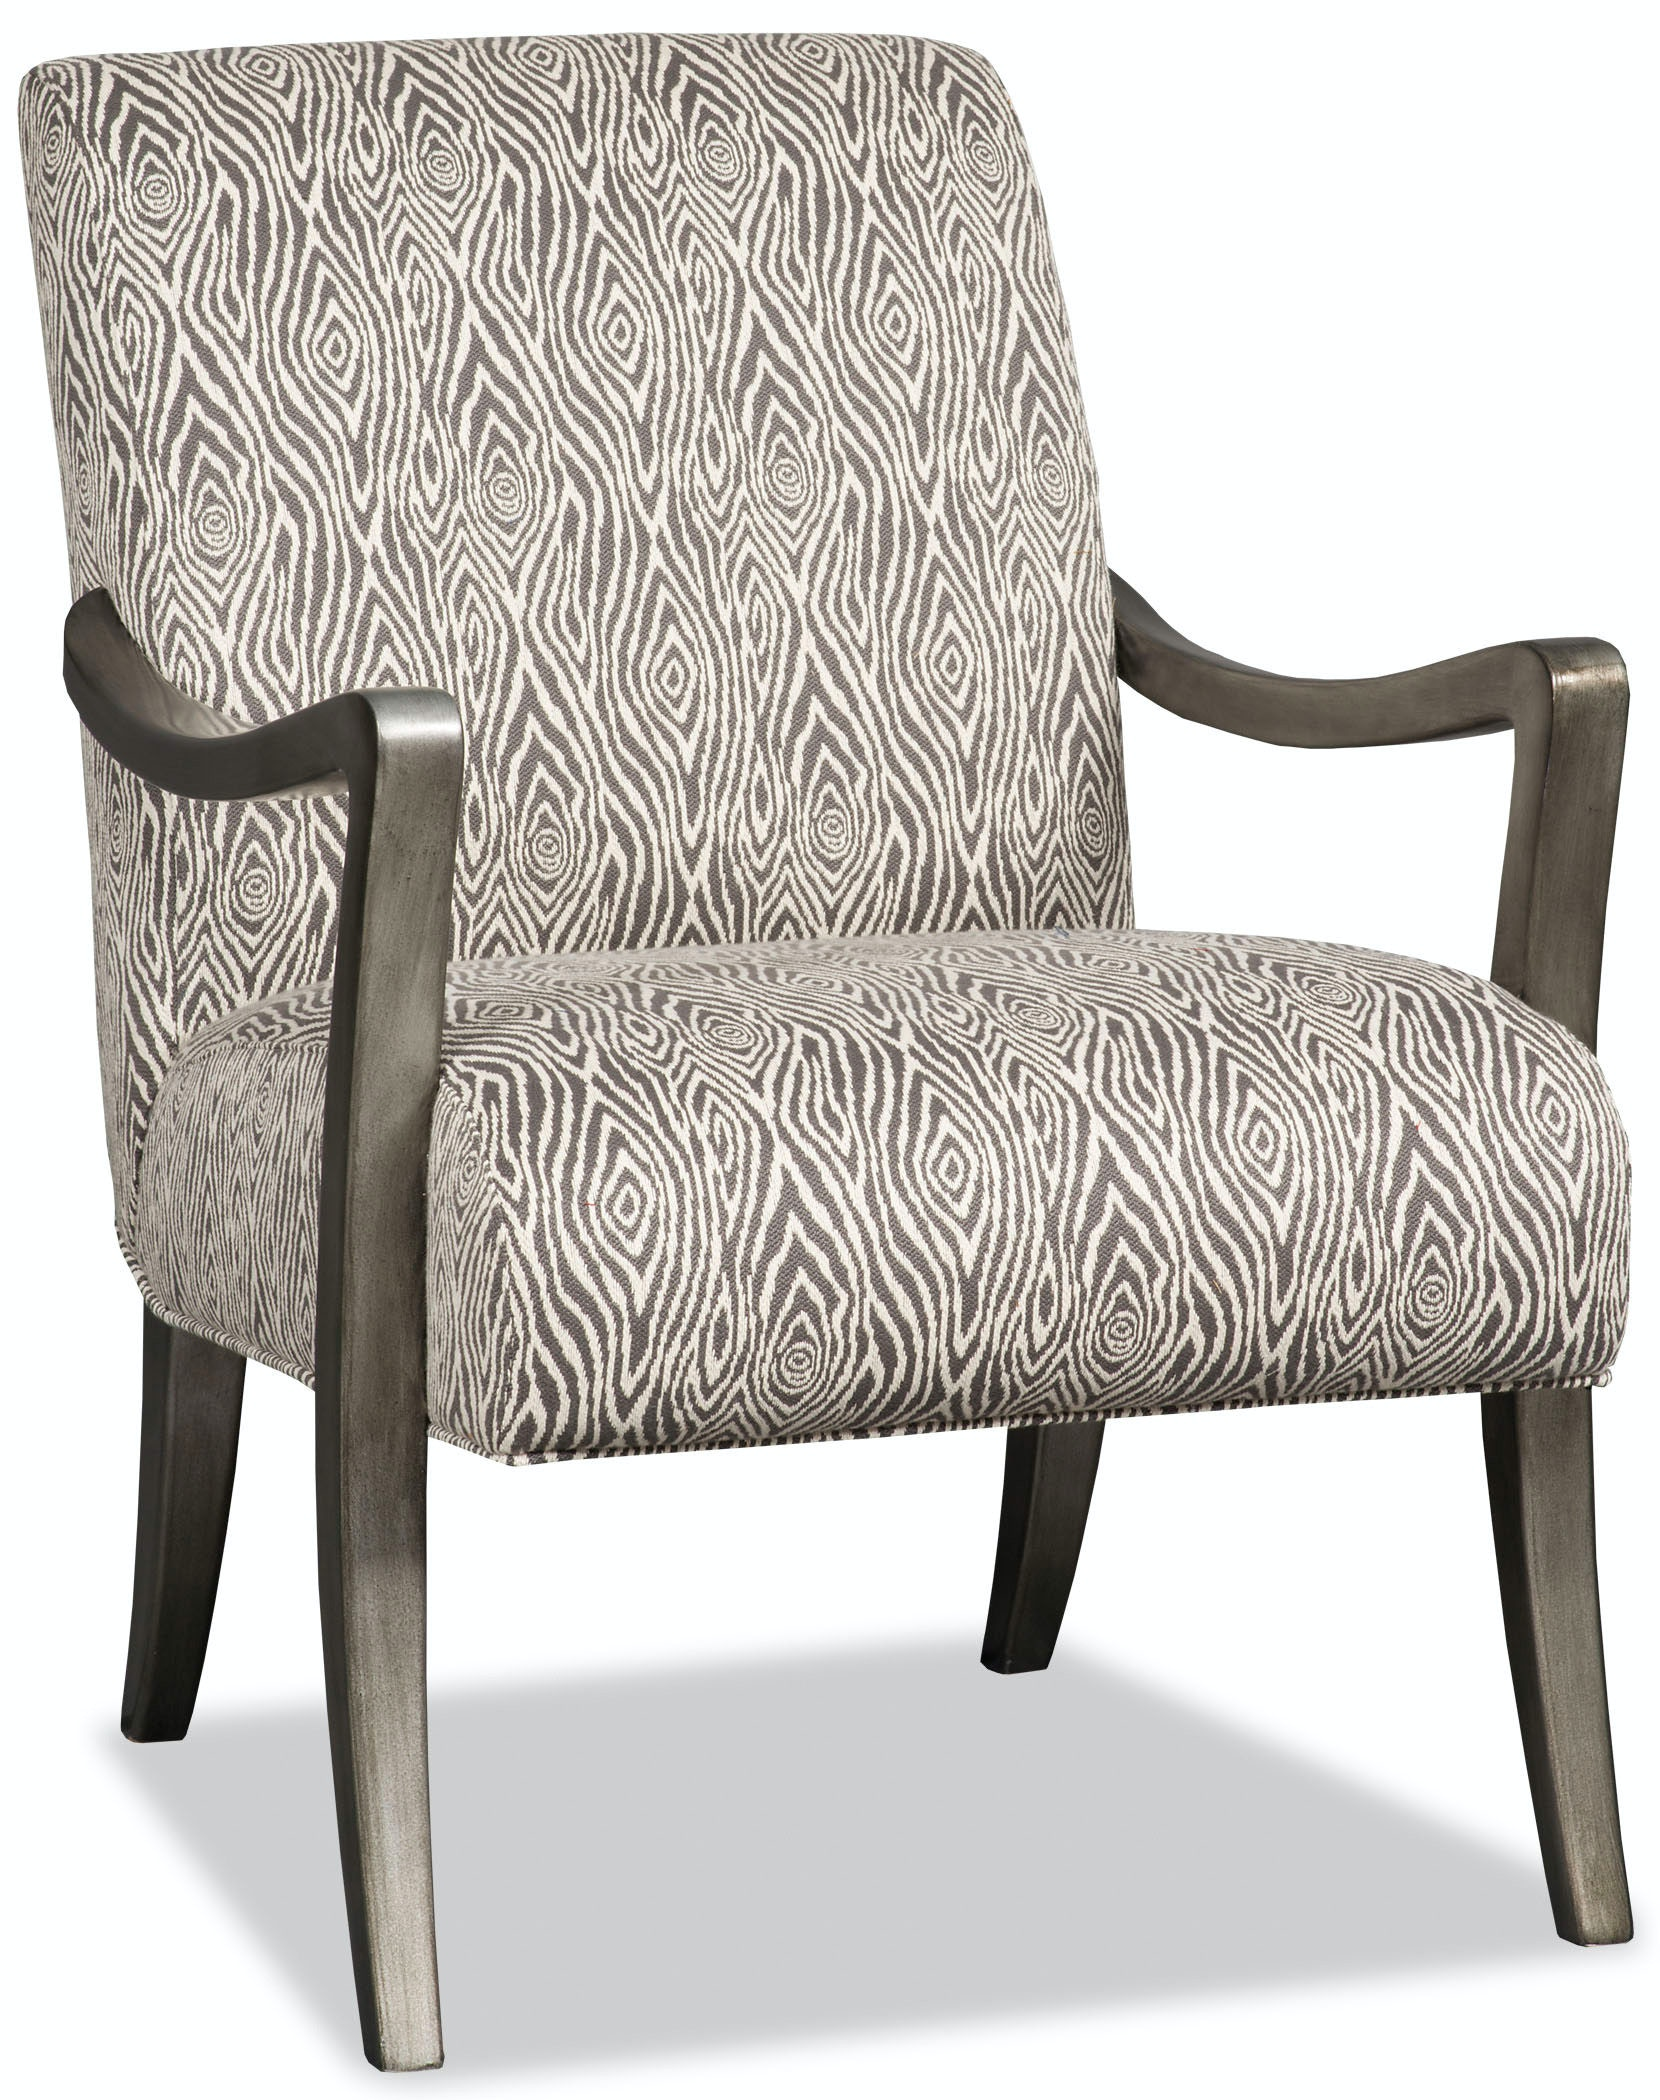 Attrayant Sam Moore Dante Exposed Wood Chair 4320